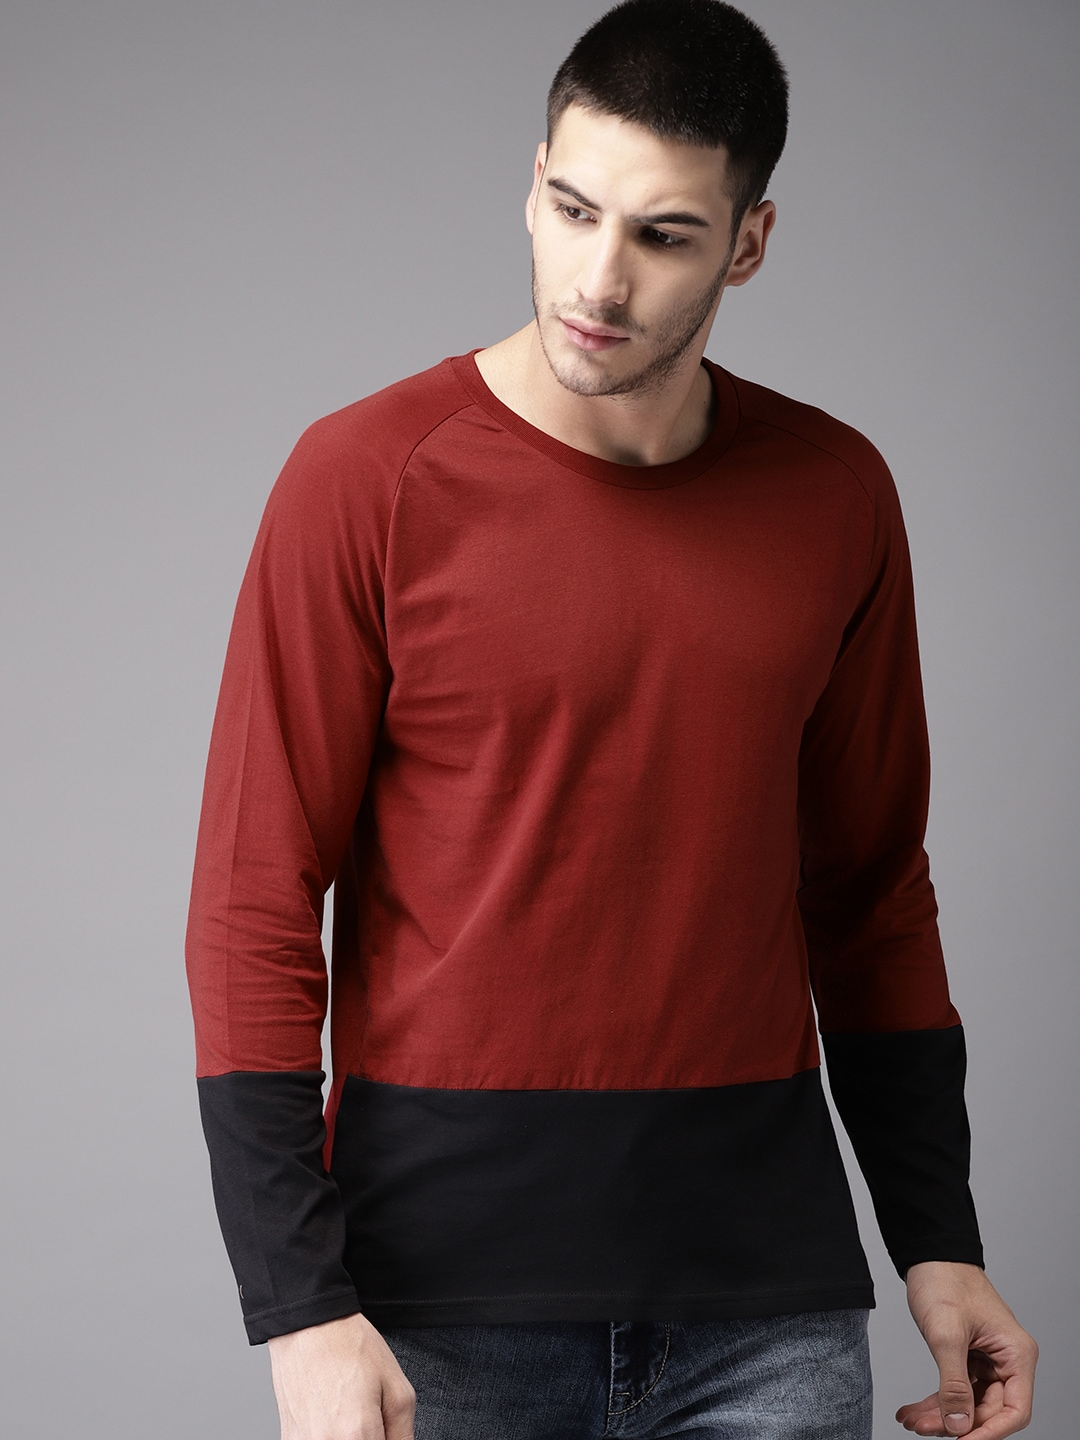 Buy HERE&NOW Maroon & Black Colour Round Neck Men's T-shirt At Best Price